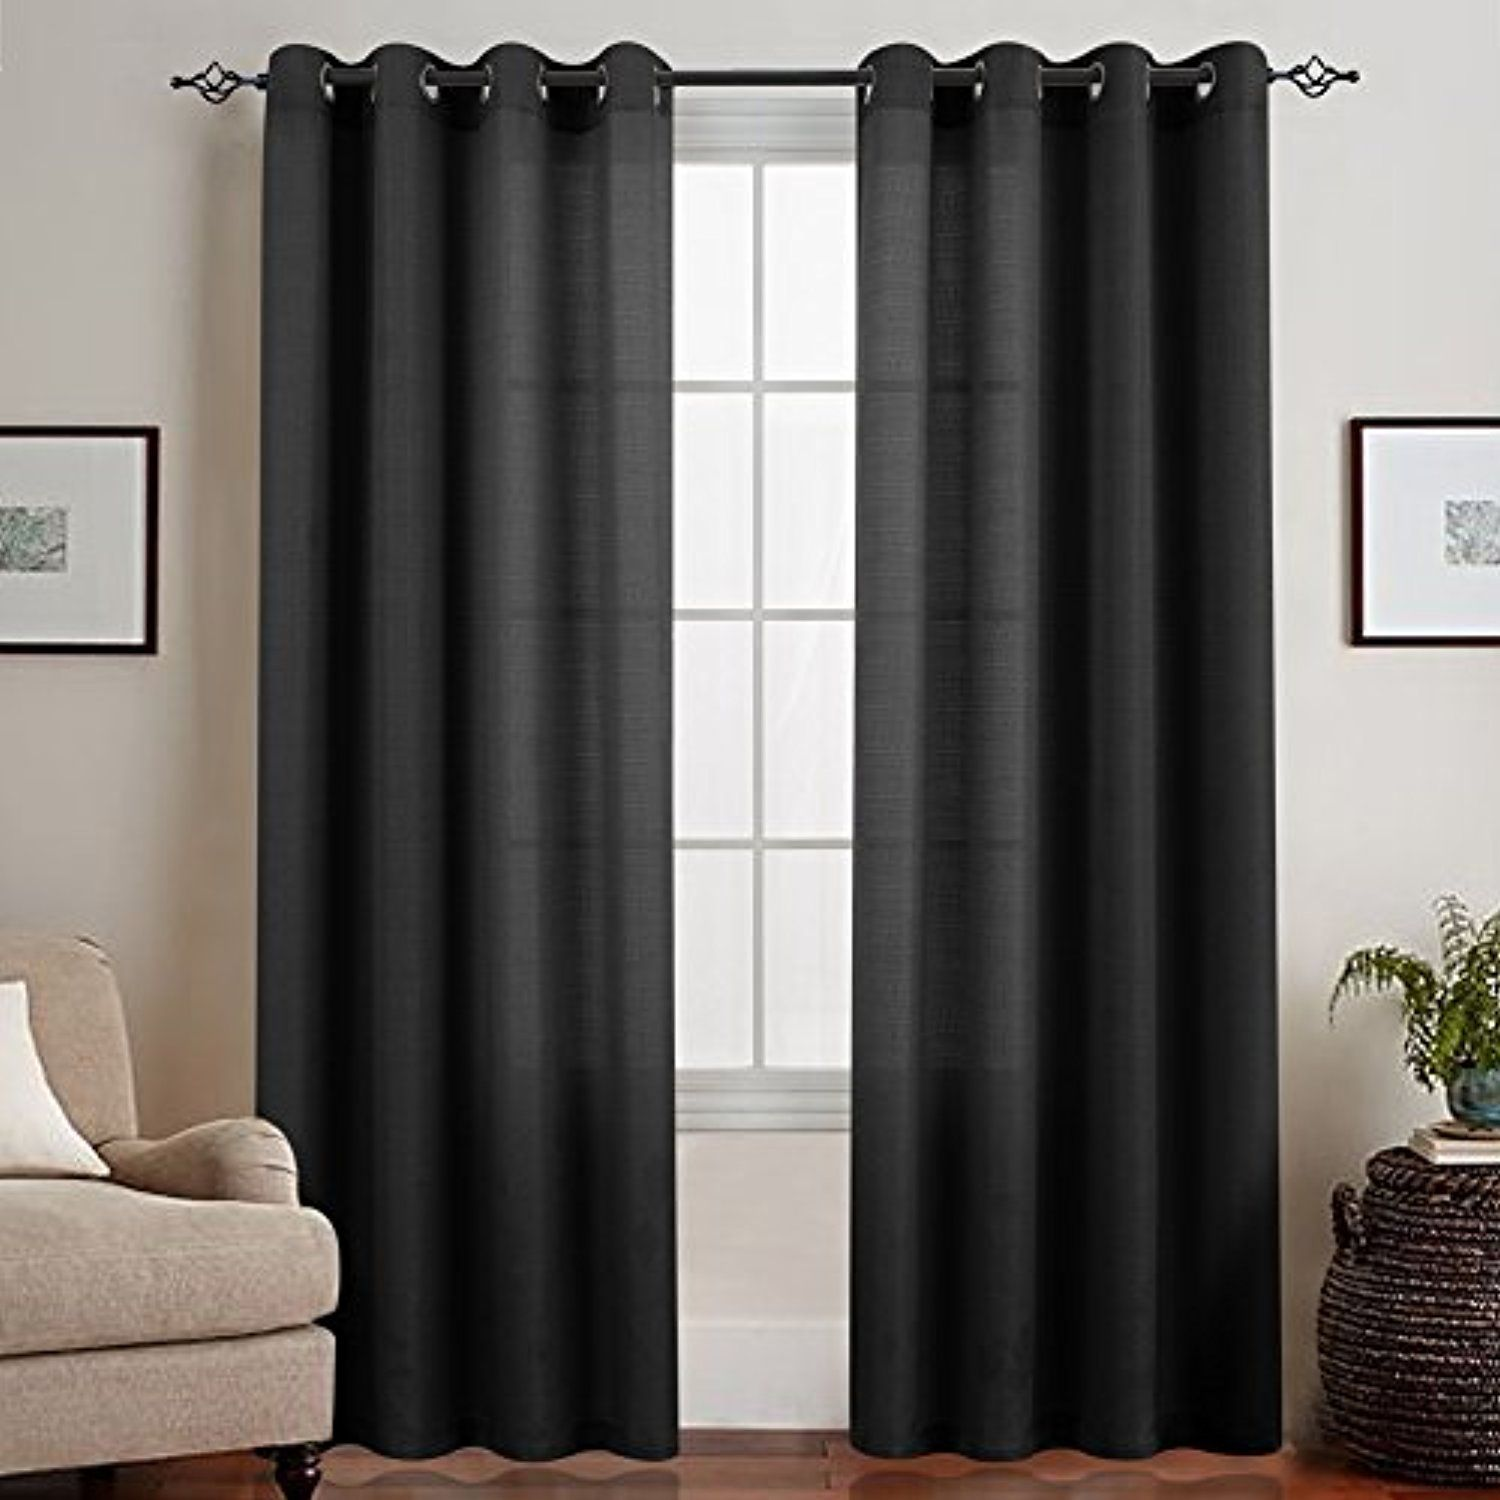 Window privacy ideas  semi sheer curtain panels for bedroom privacy casual weave linen